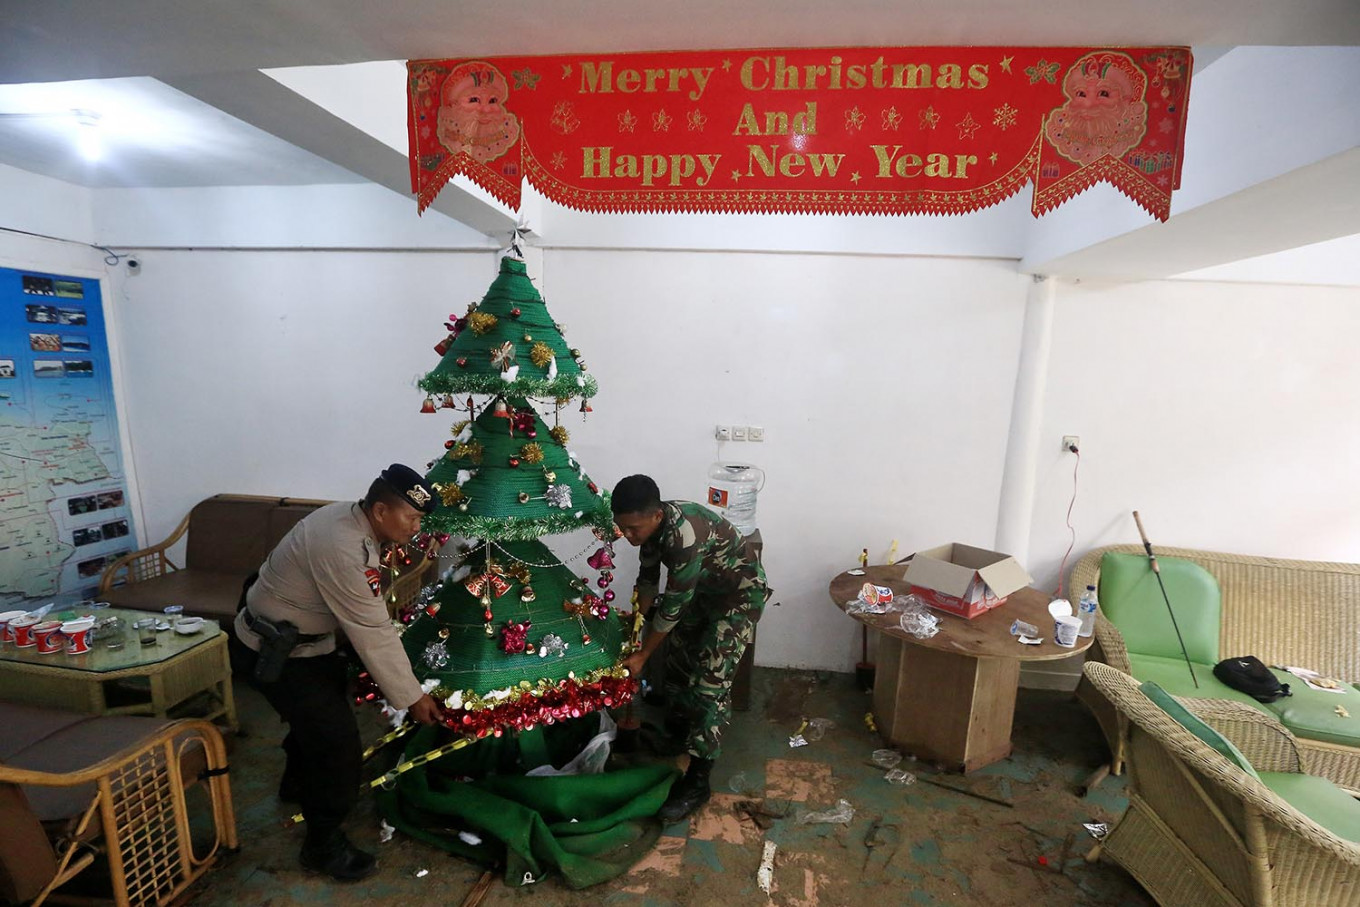 Sad Christmas: A police officer and a member of the military remove a Christmas tree from a tsunami-damaged building in the Carita Beach area, Pandeglang, Banten, on Monday, December 24, 2018. JP/Dhoni Setiawan